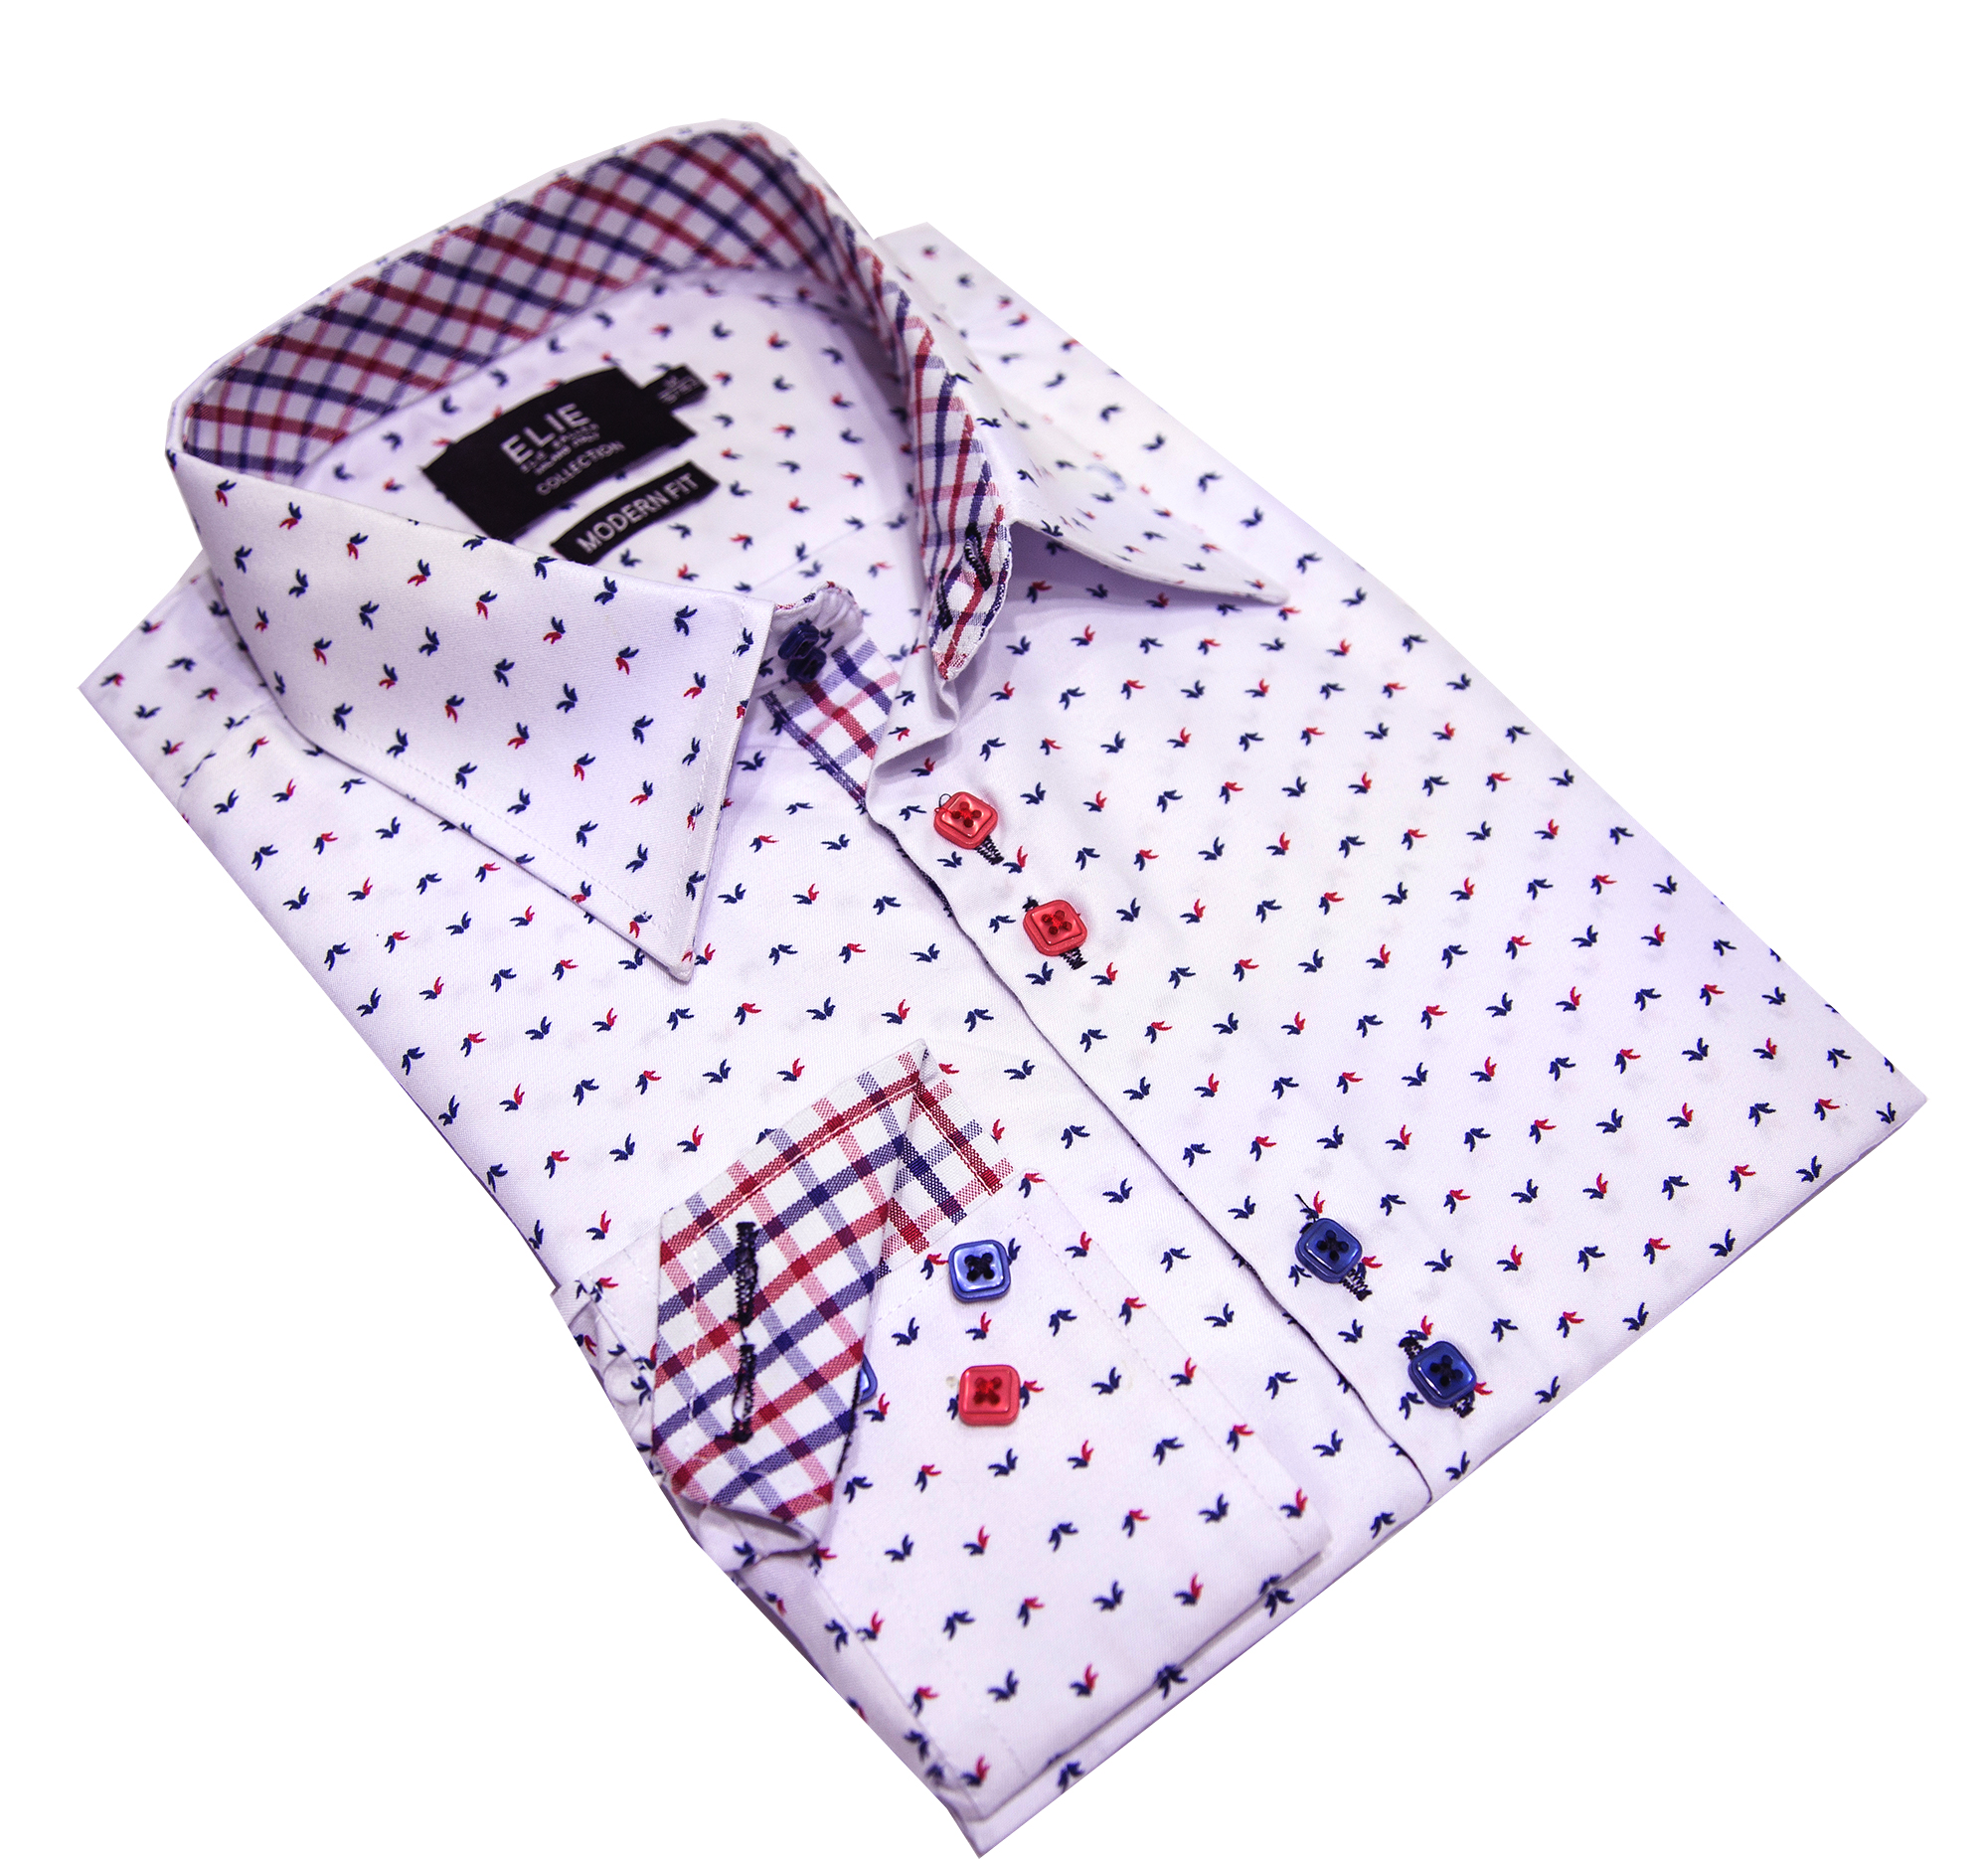 Geometric Navy Men's Shirts/Button Down CEBSH321M